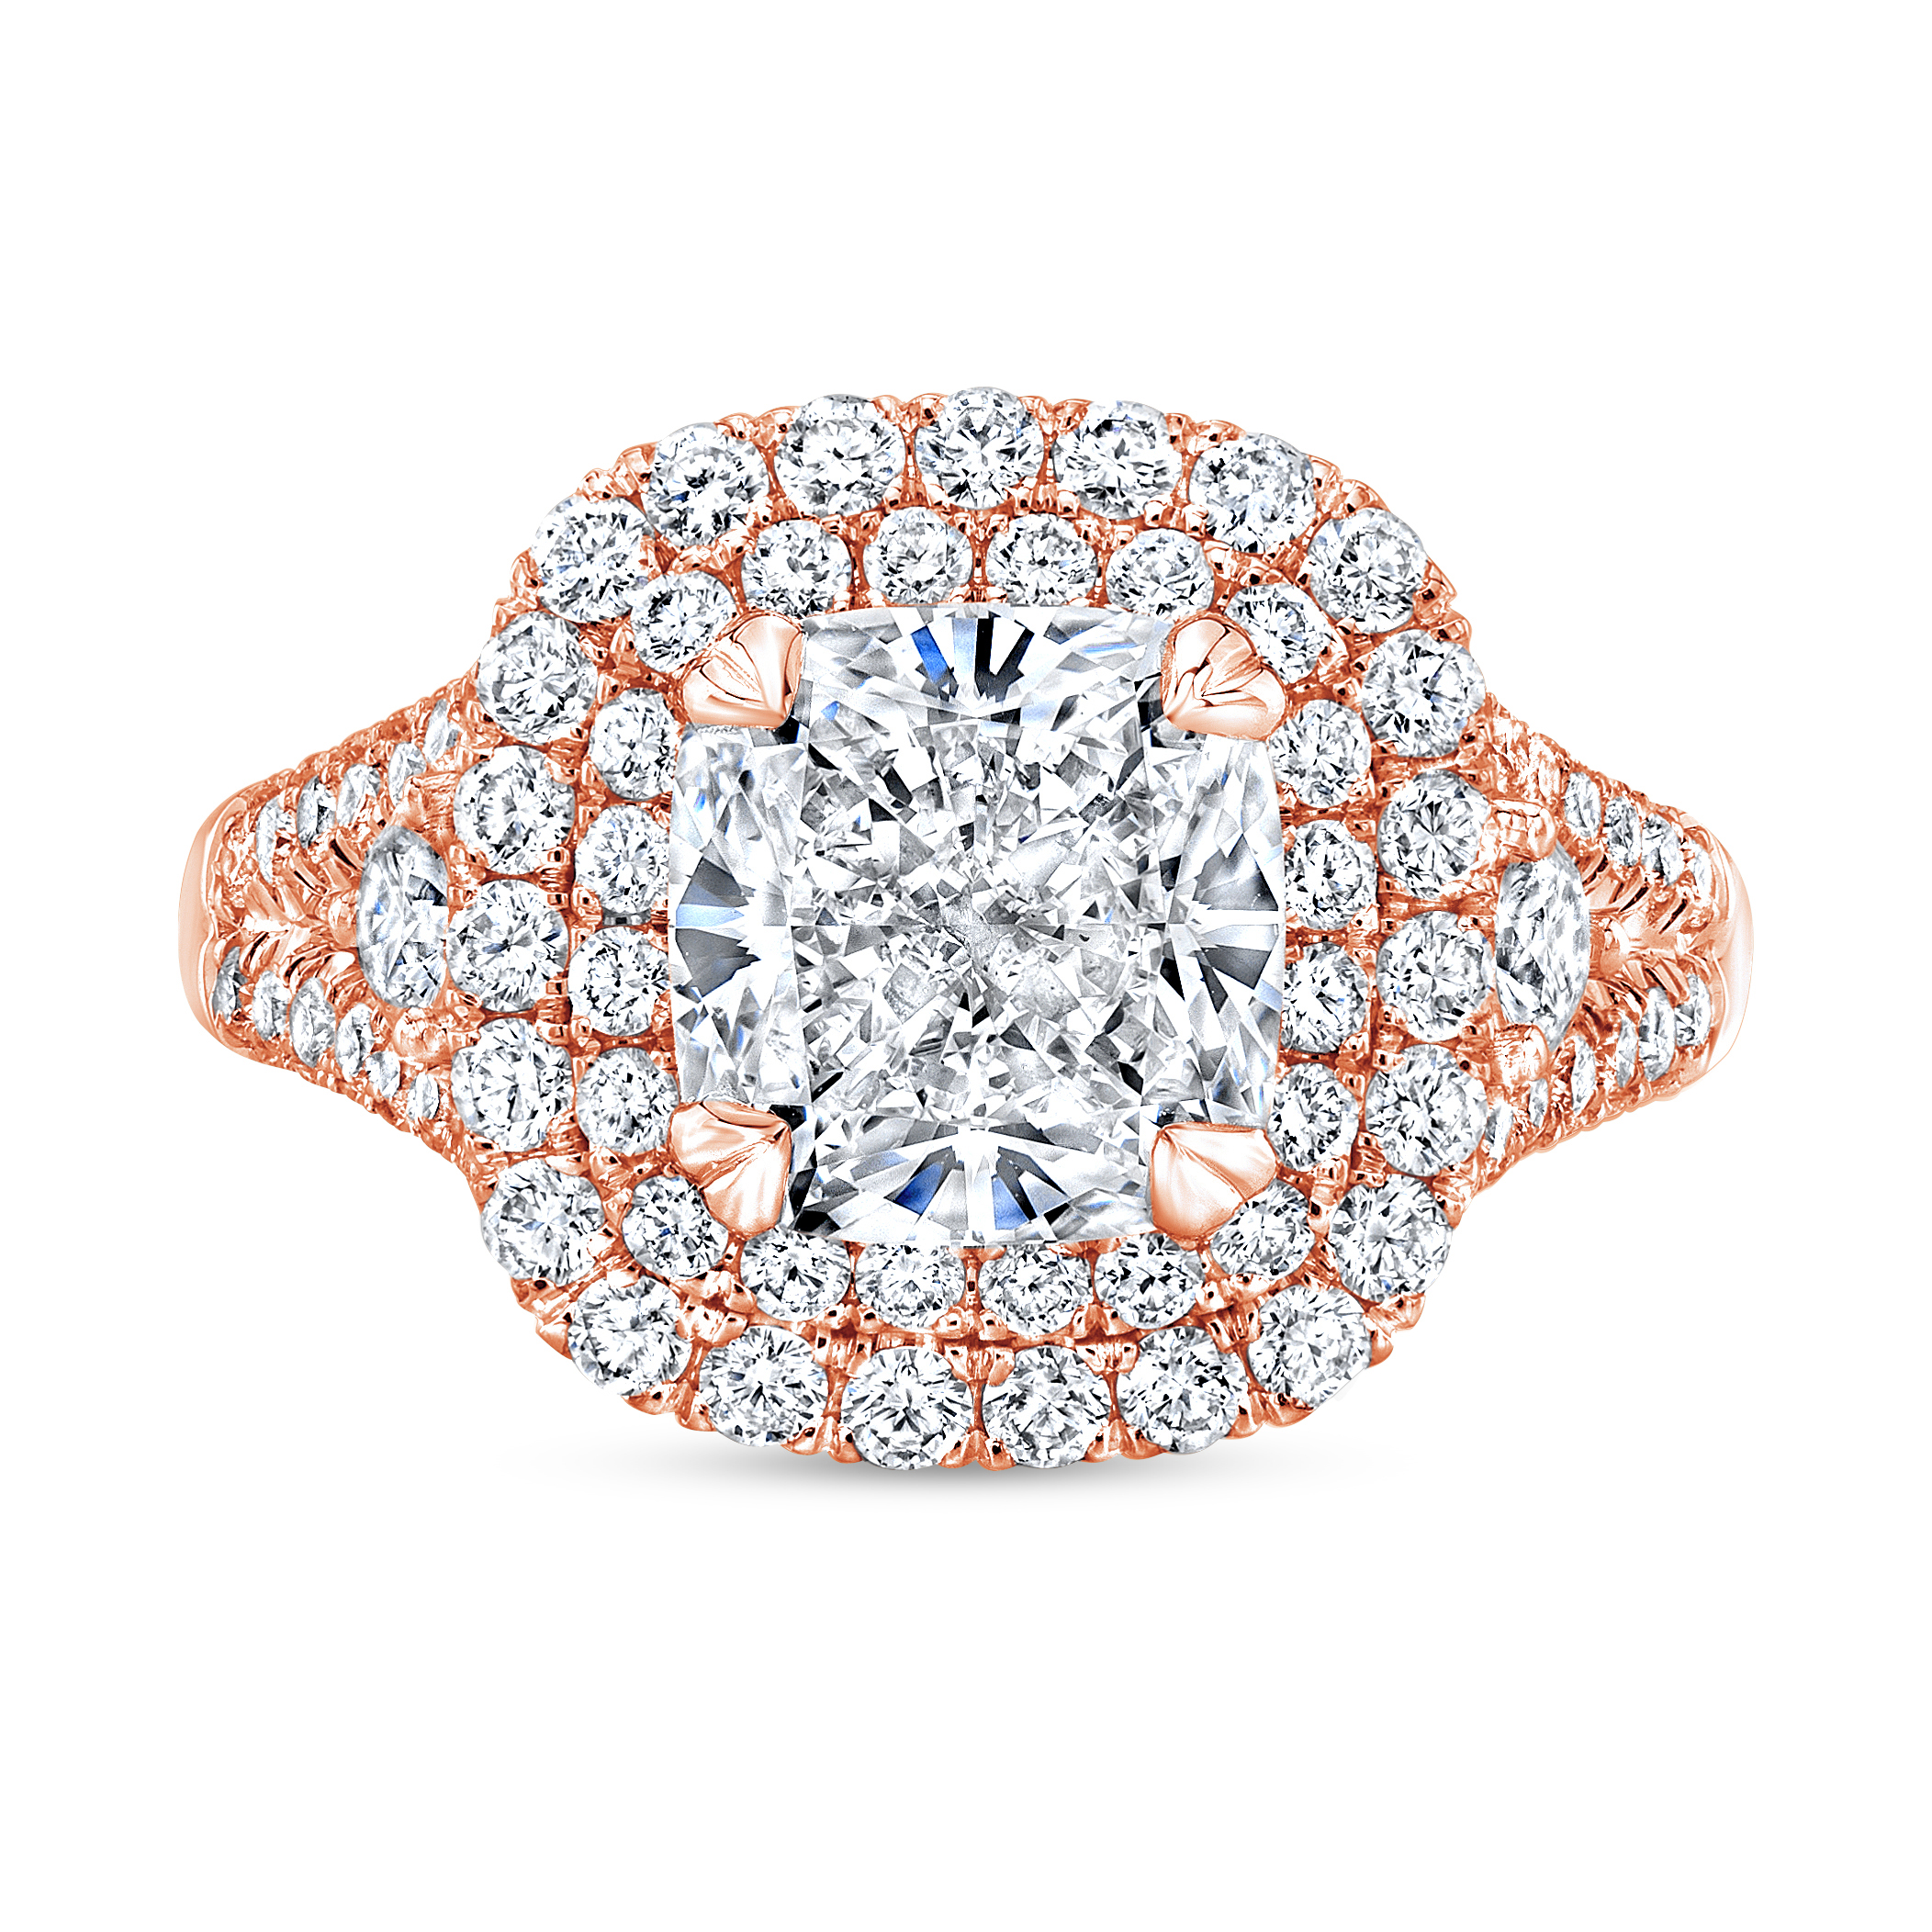 Double Halo Split Shank Micro Pave Diamond Engagement Ring in rose gold